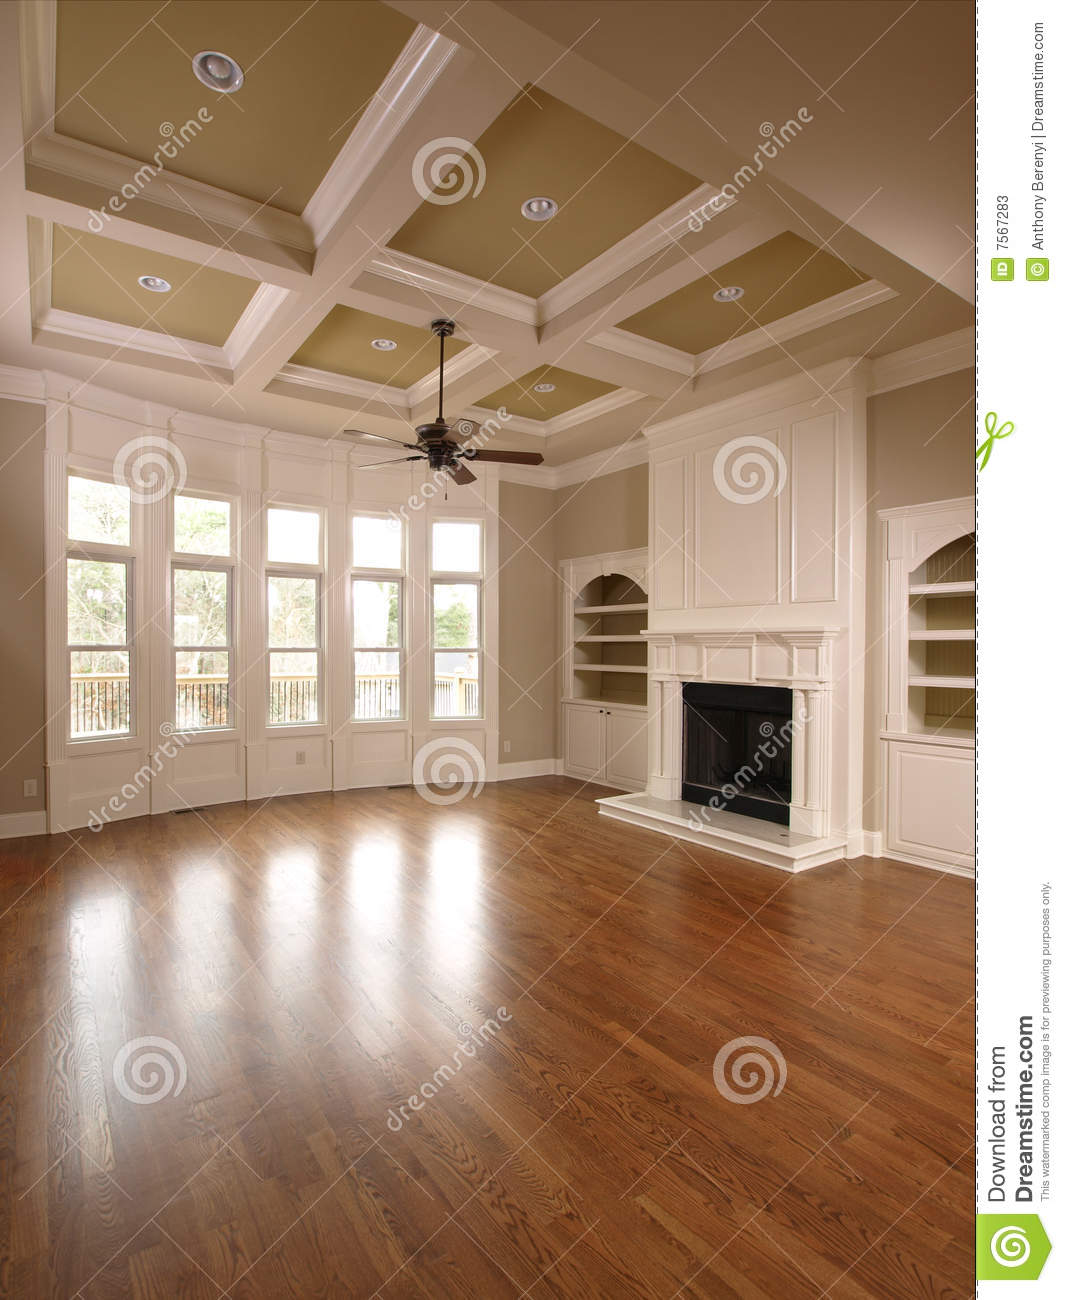 Luxury Home Interior Living Room With Windows Stock Photos